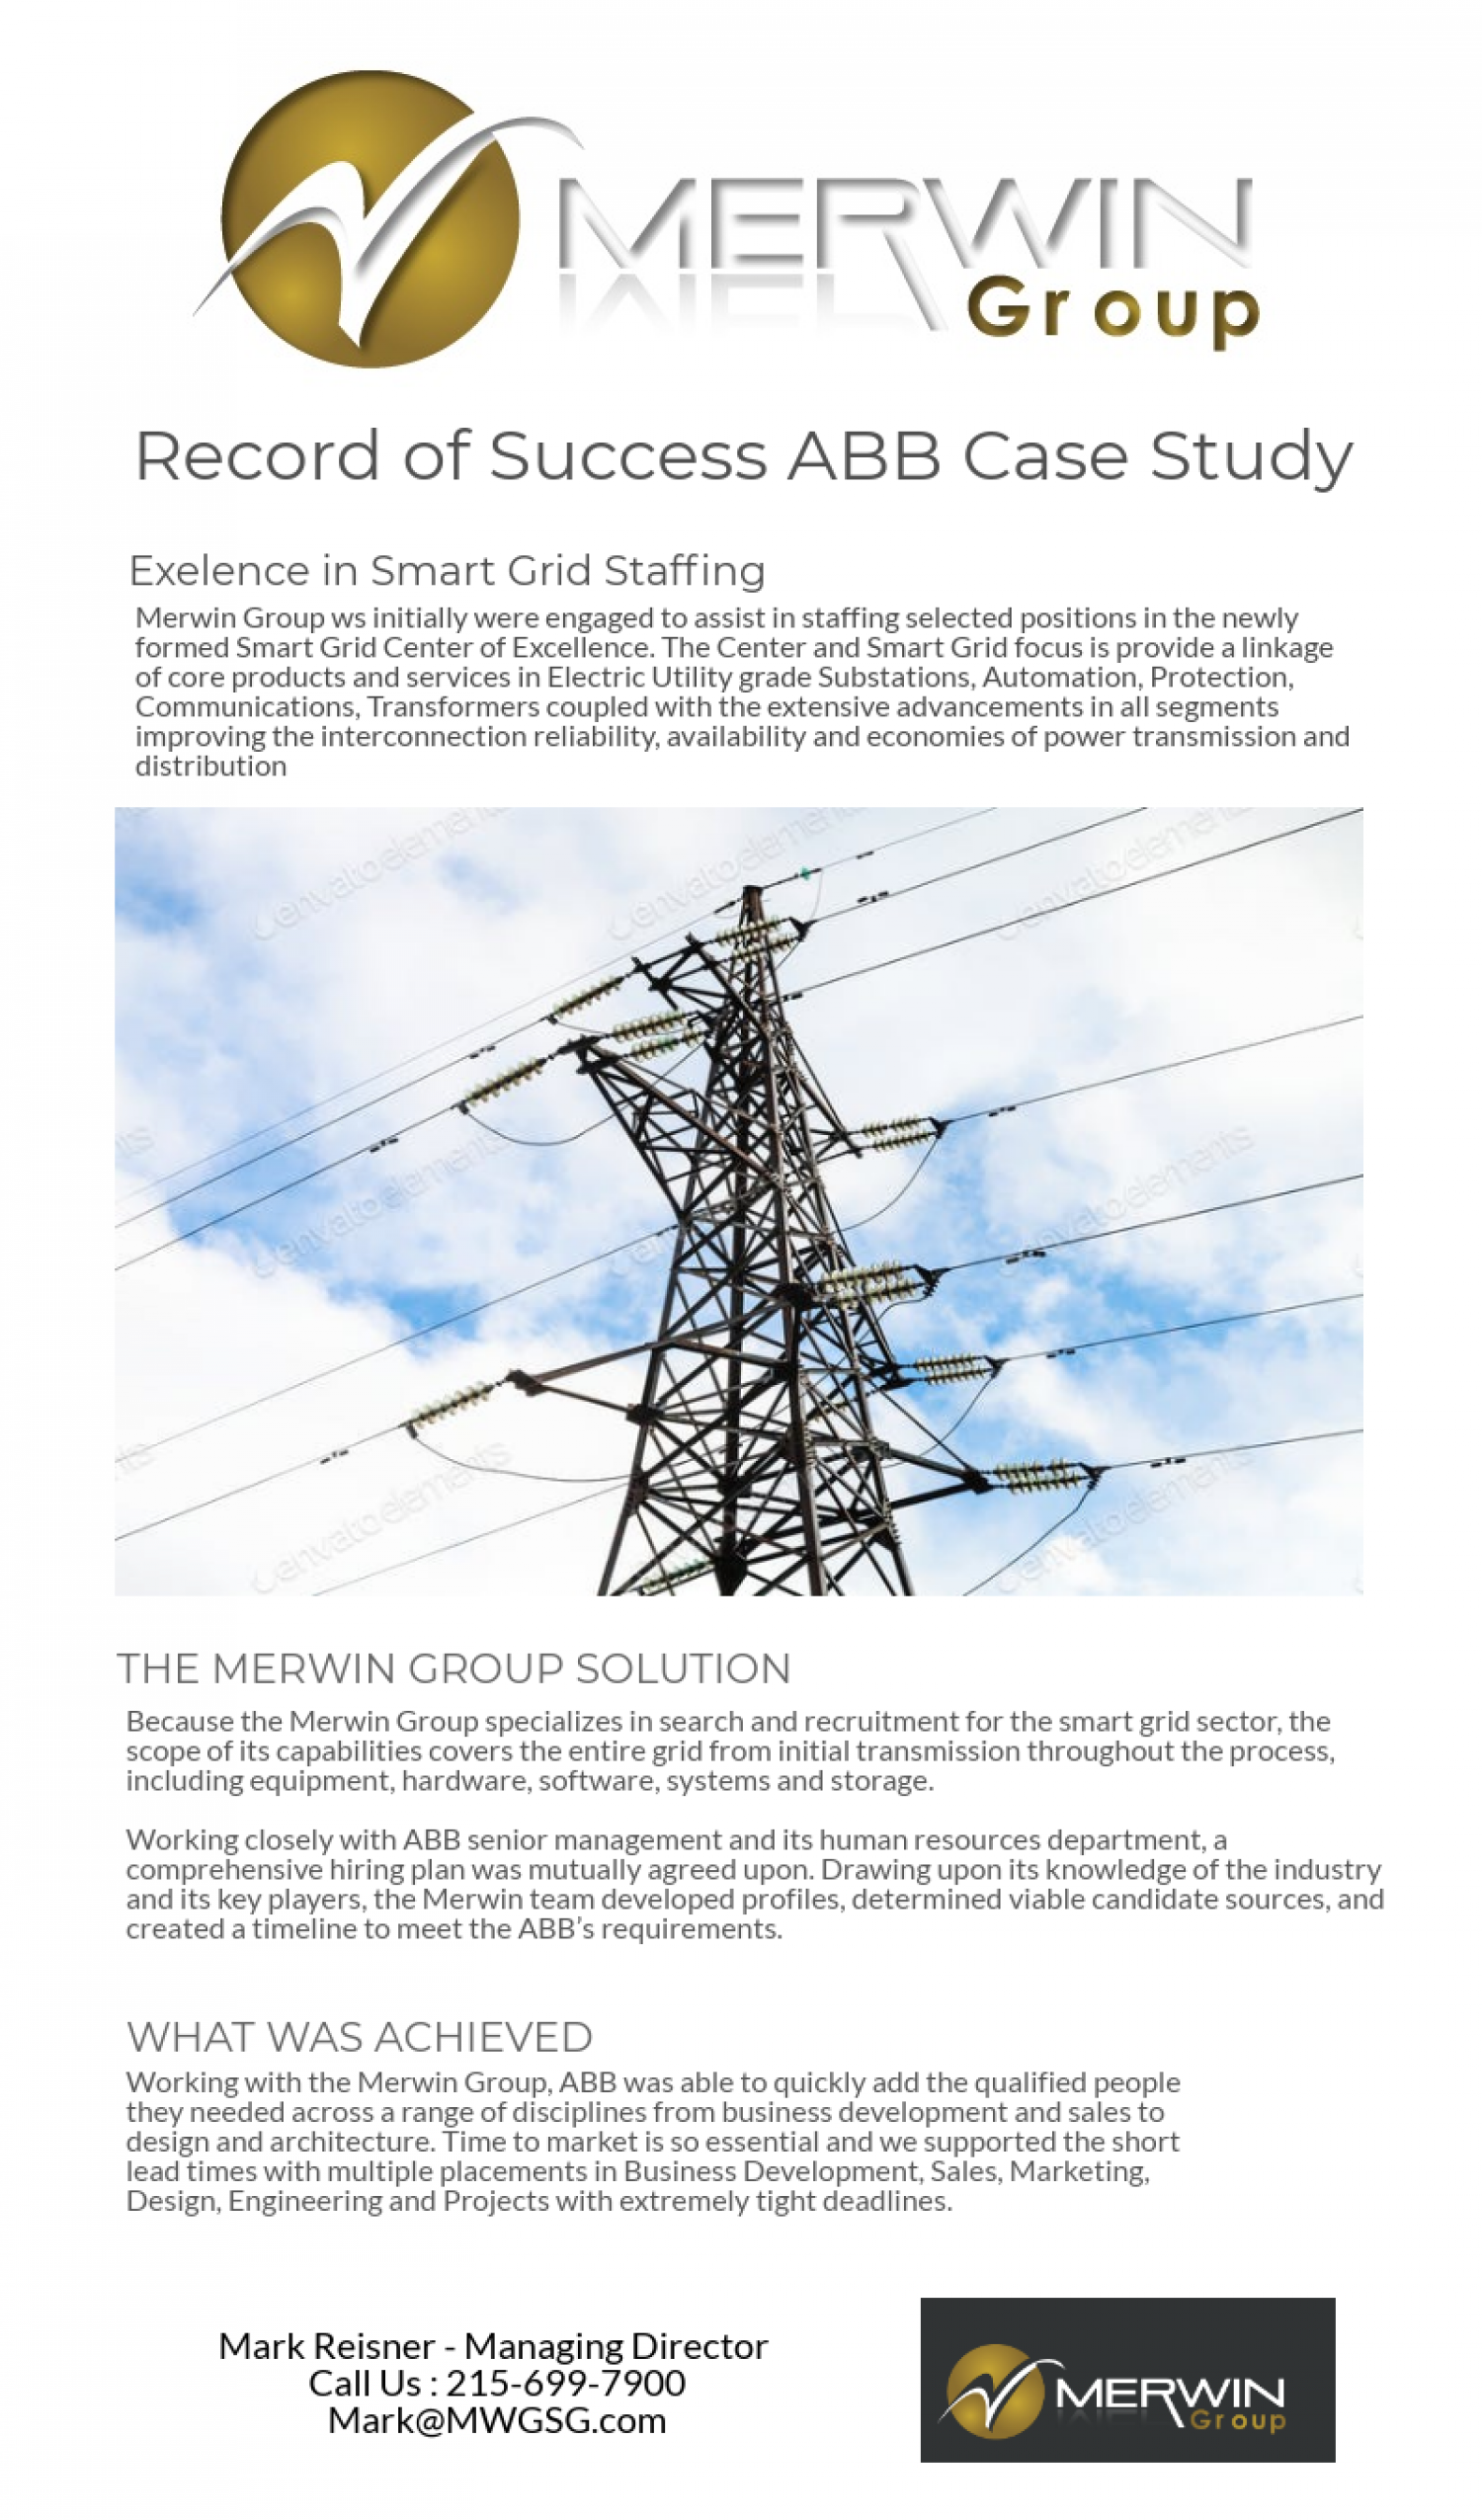 The Electrical Power Distribution System - Merwin Group Infographic